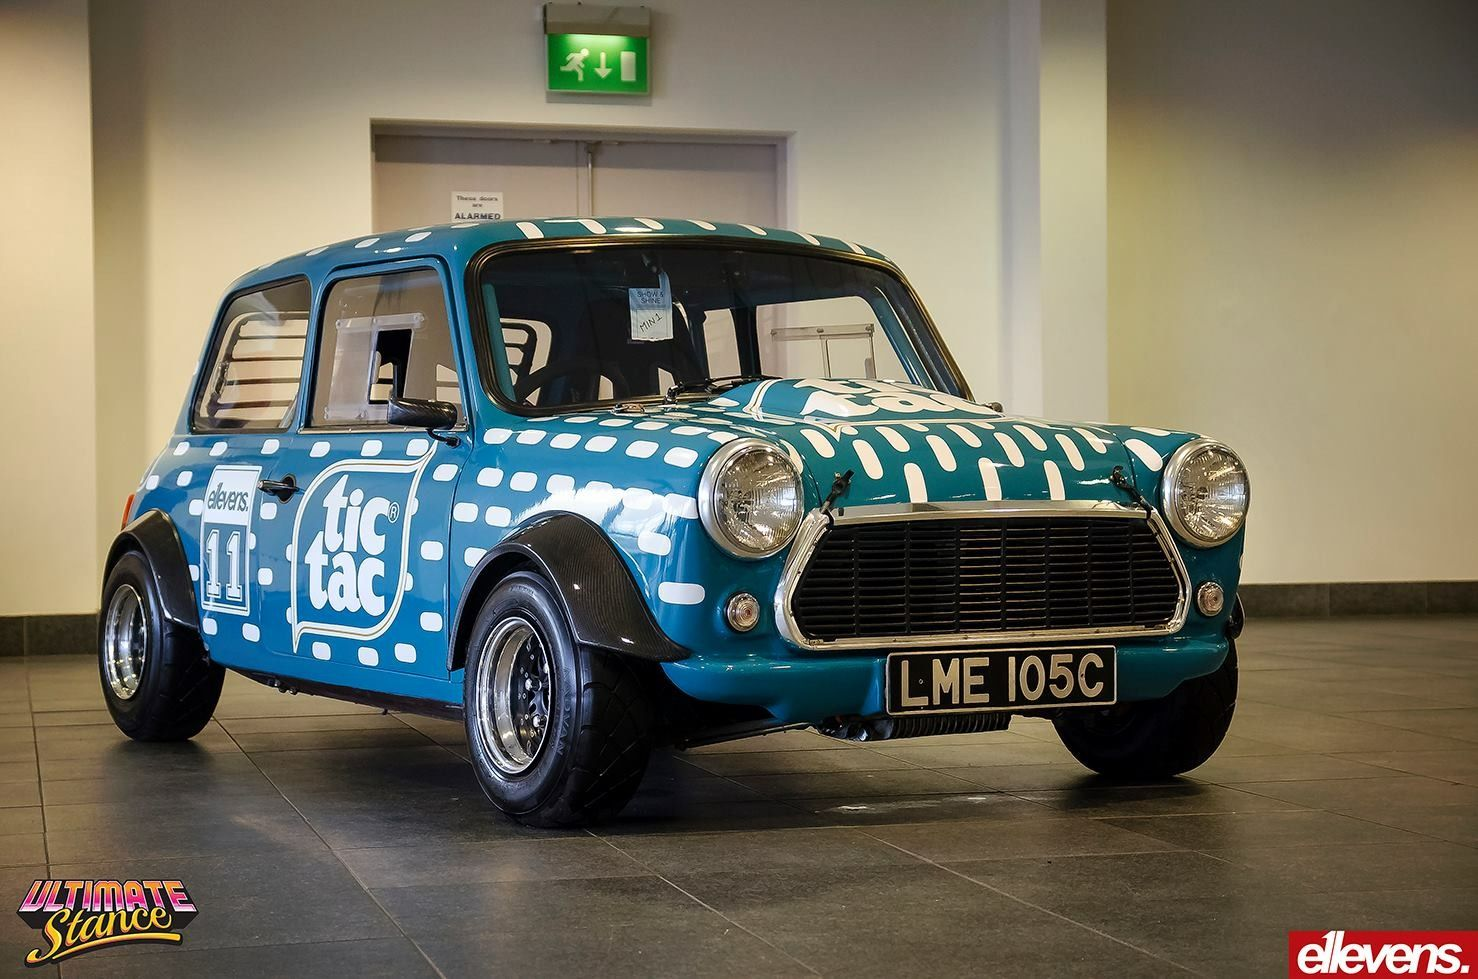 Mini track racing car  Livery by E11evens | Car wrap and